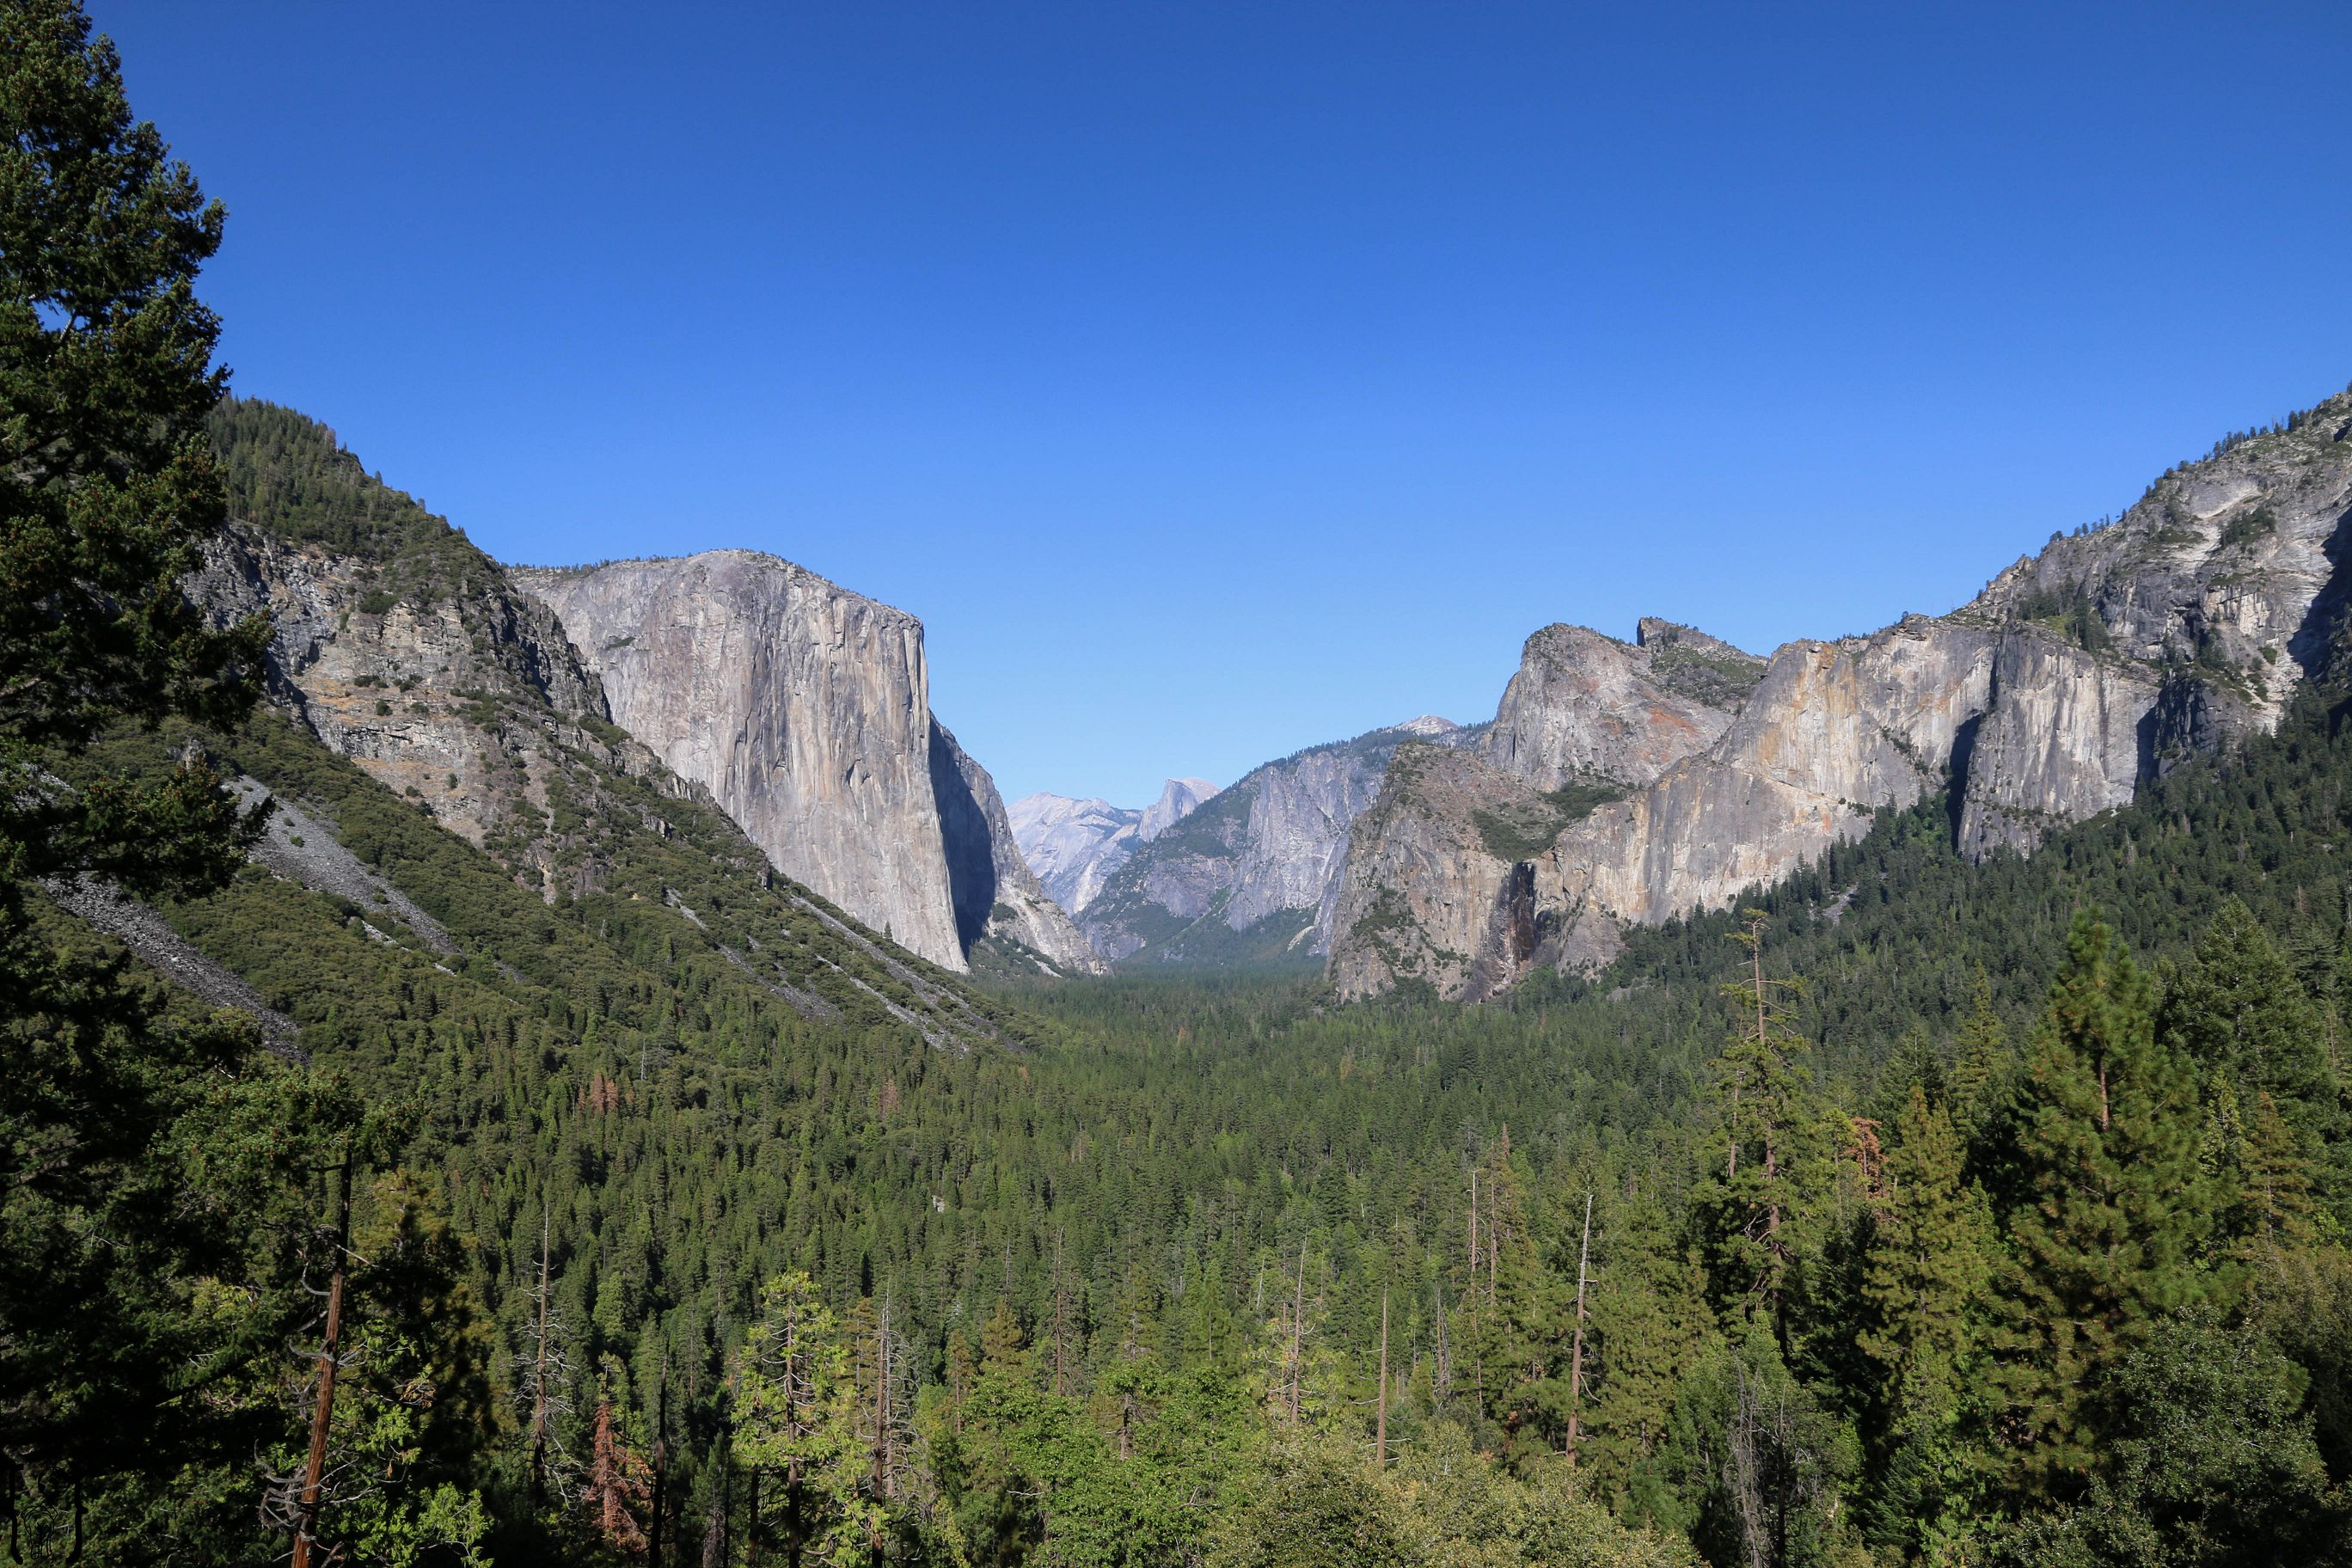 16 Tunnel View